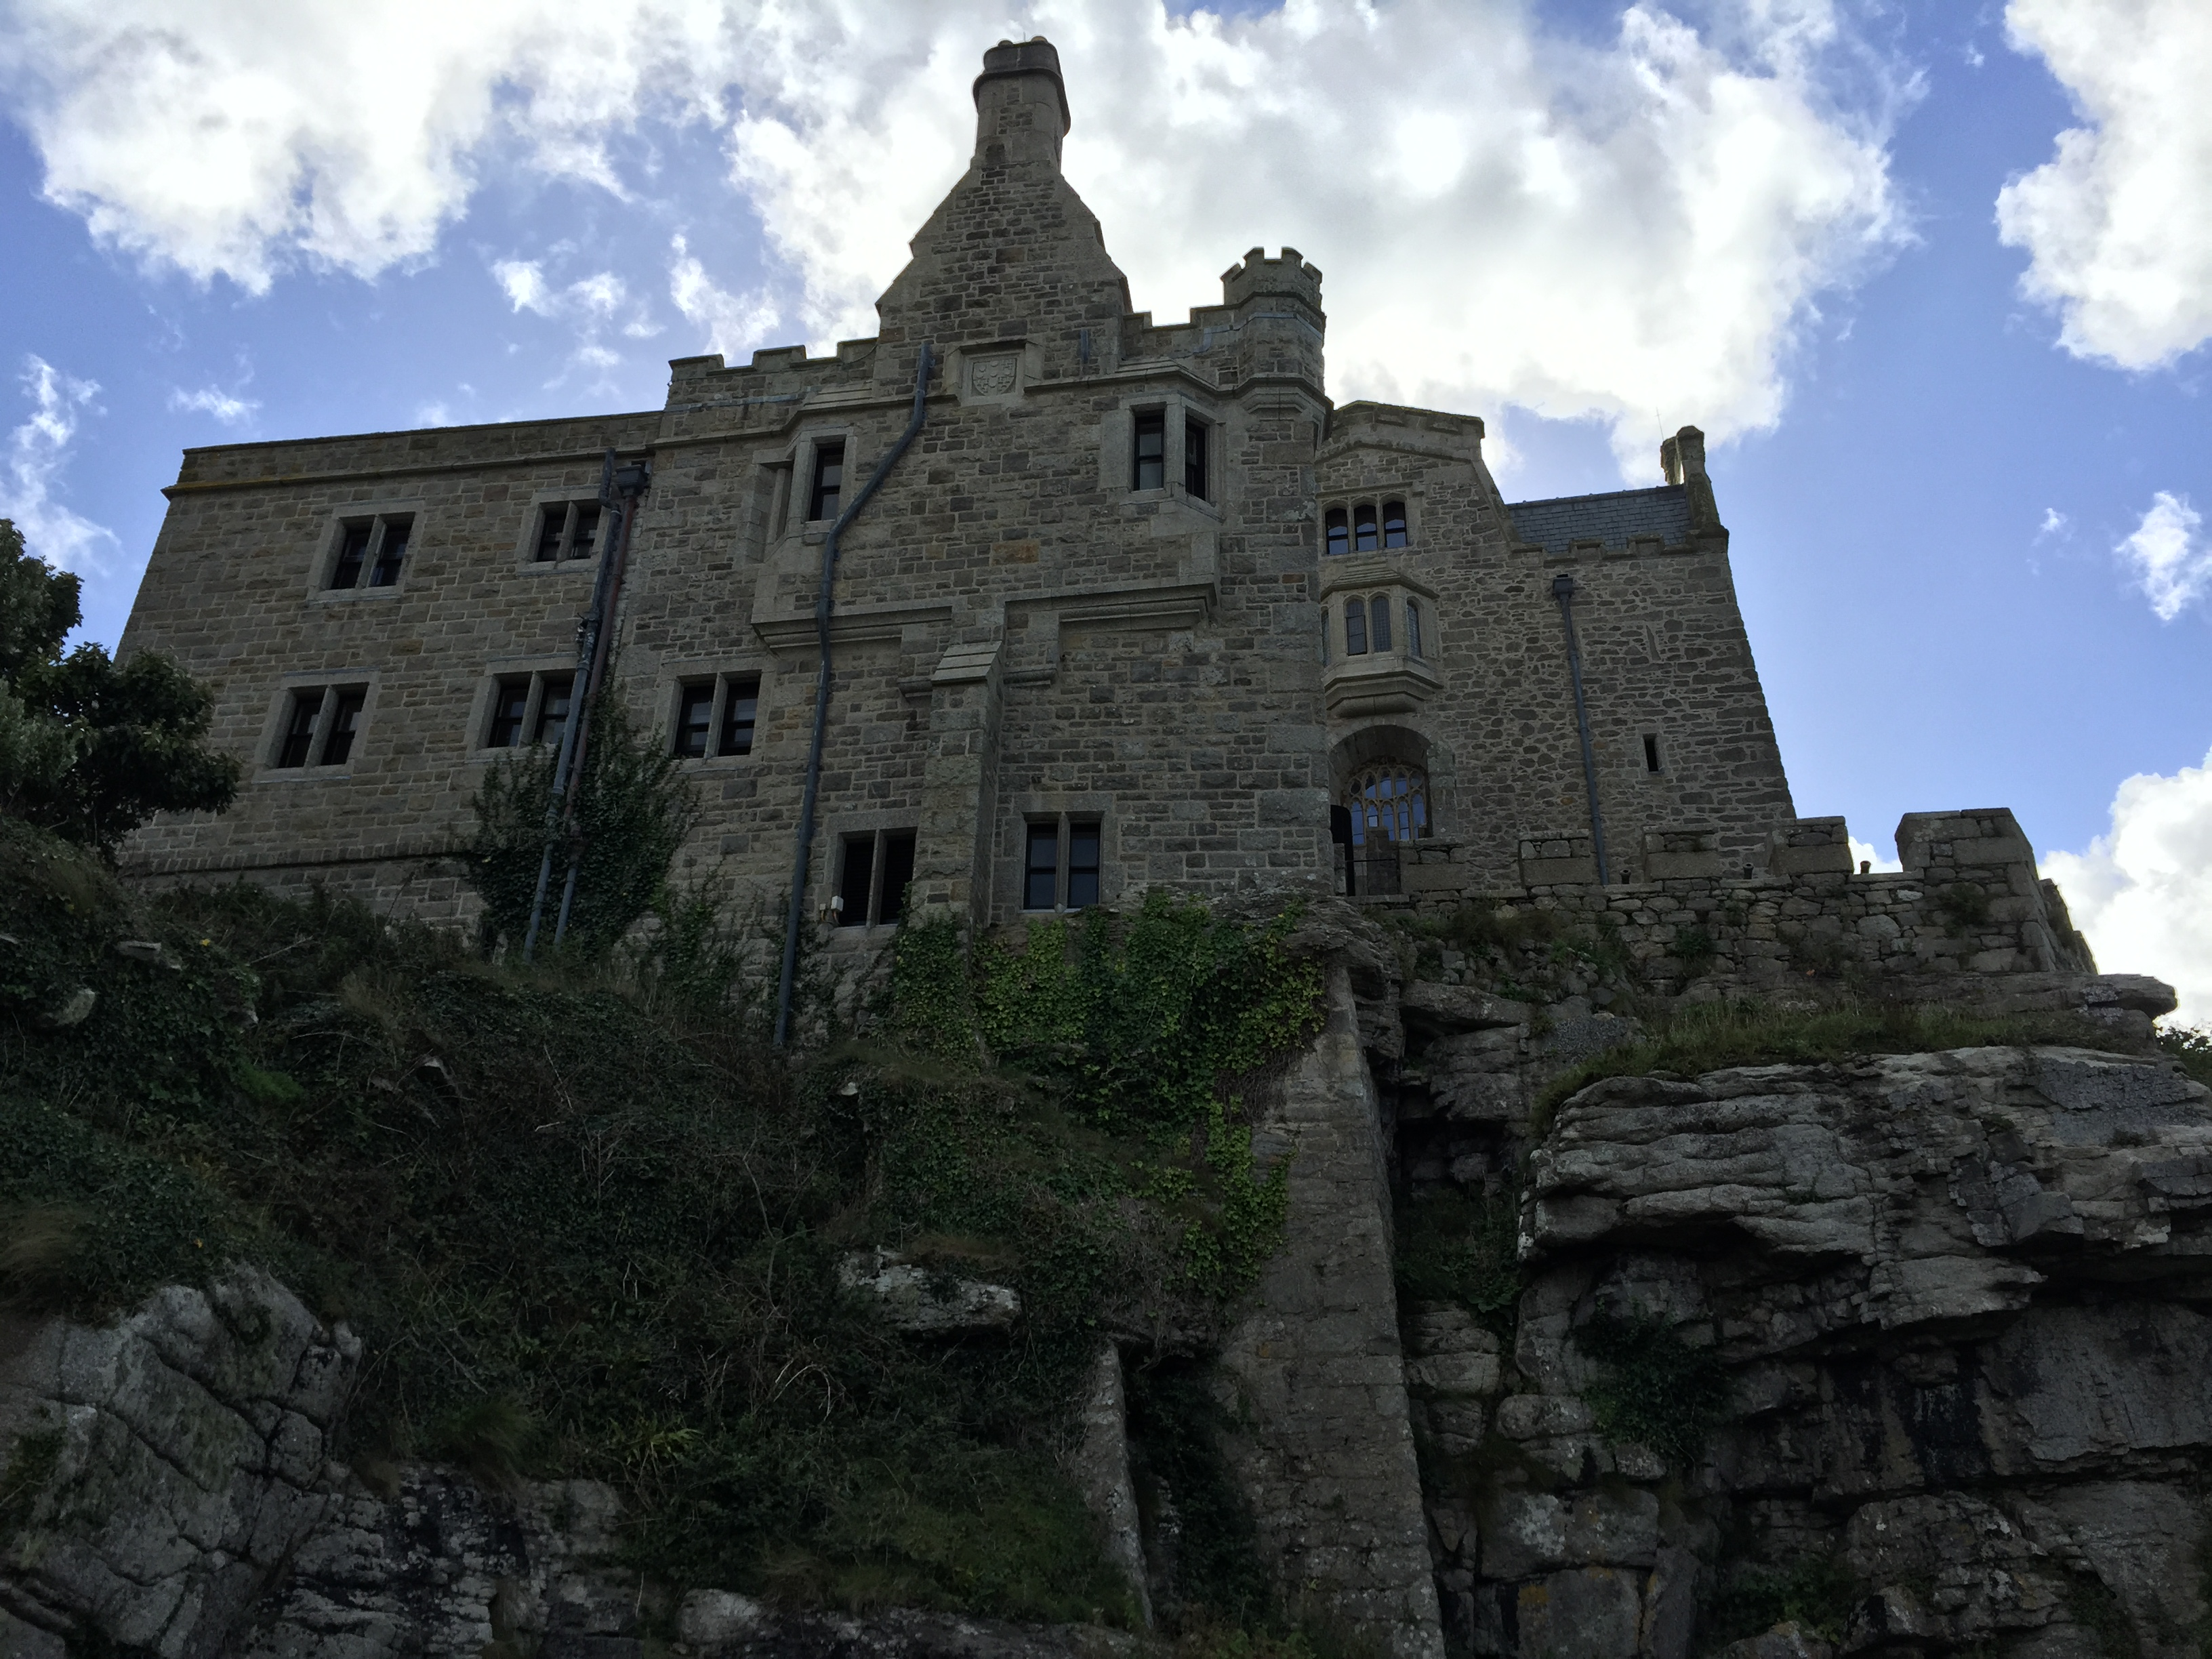 The castle. Photo: Cathy Hanson